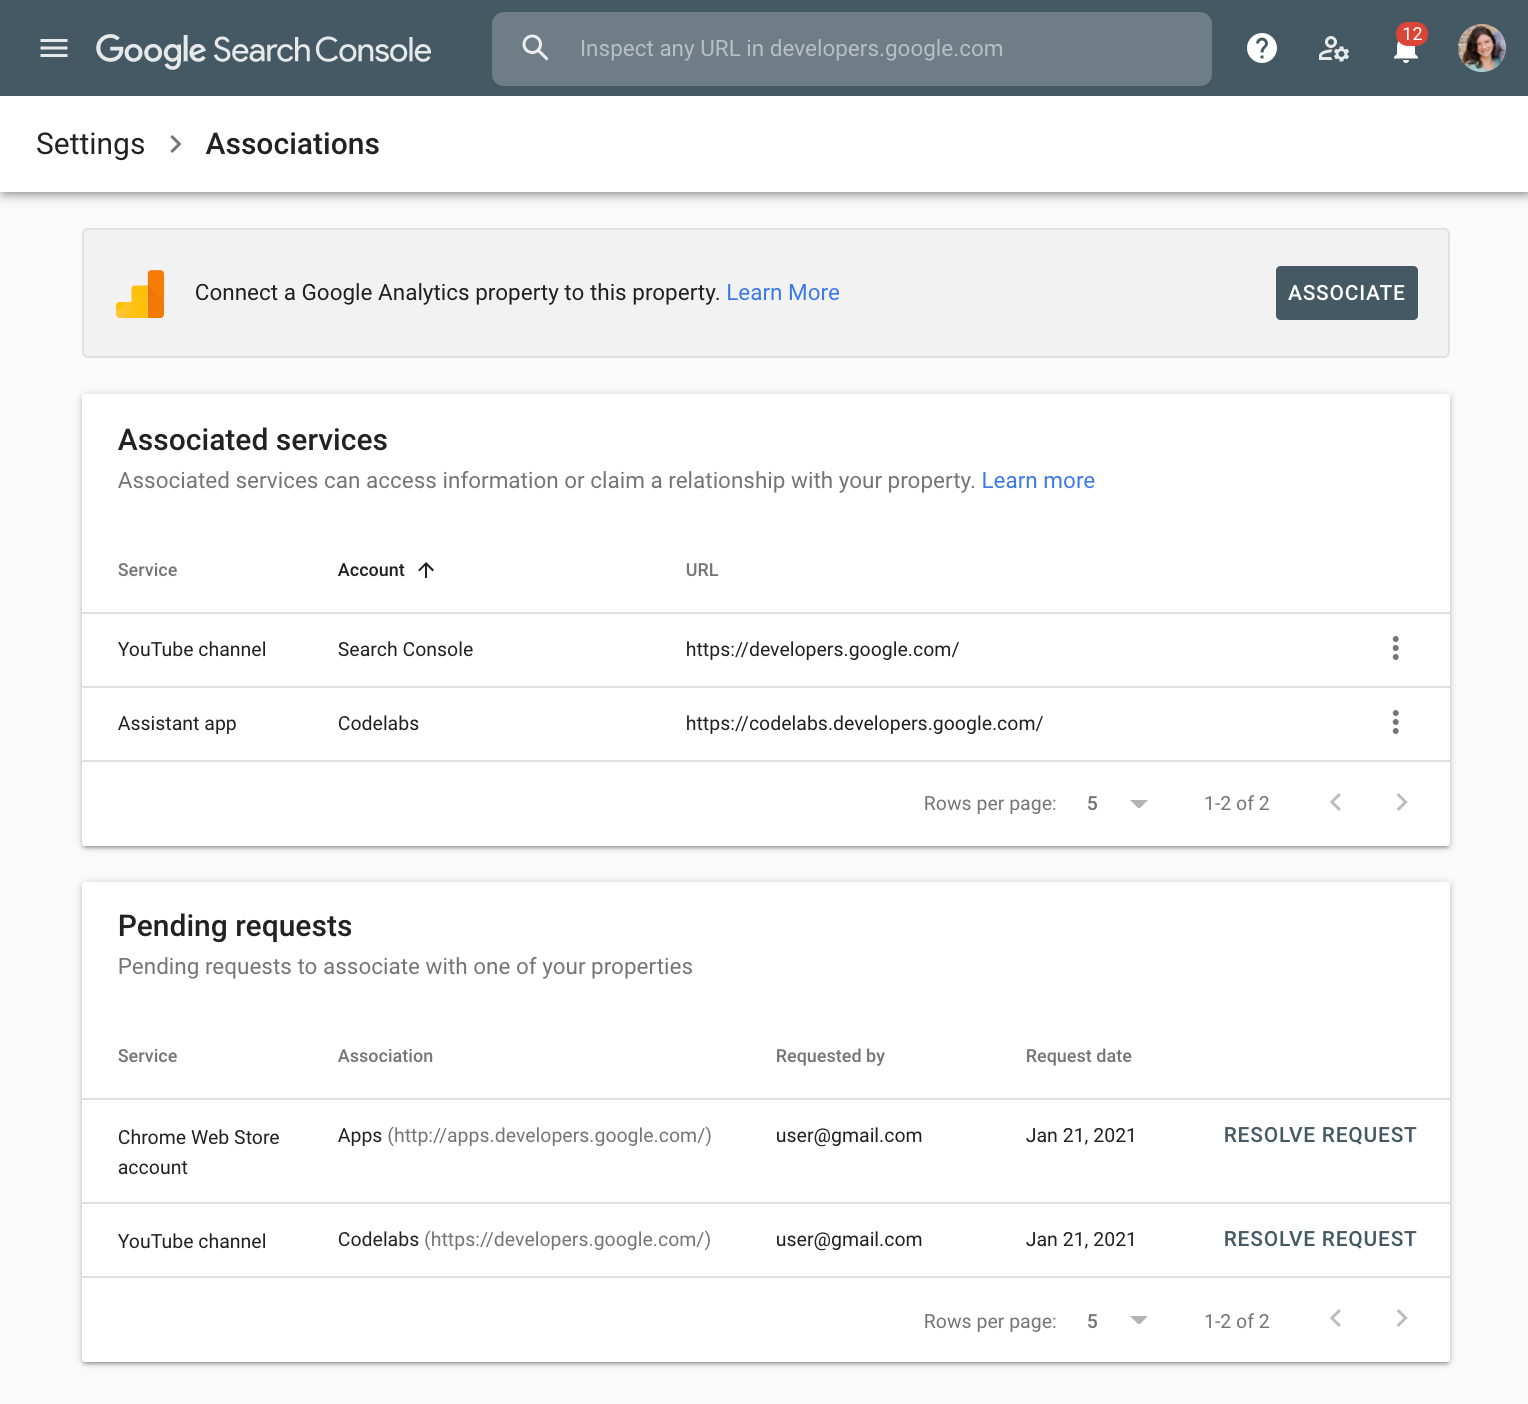 Google Search Console Associations page